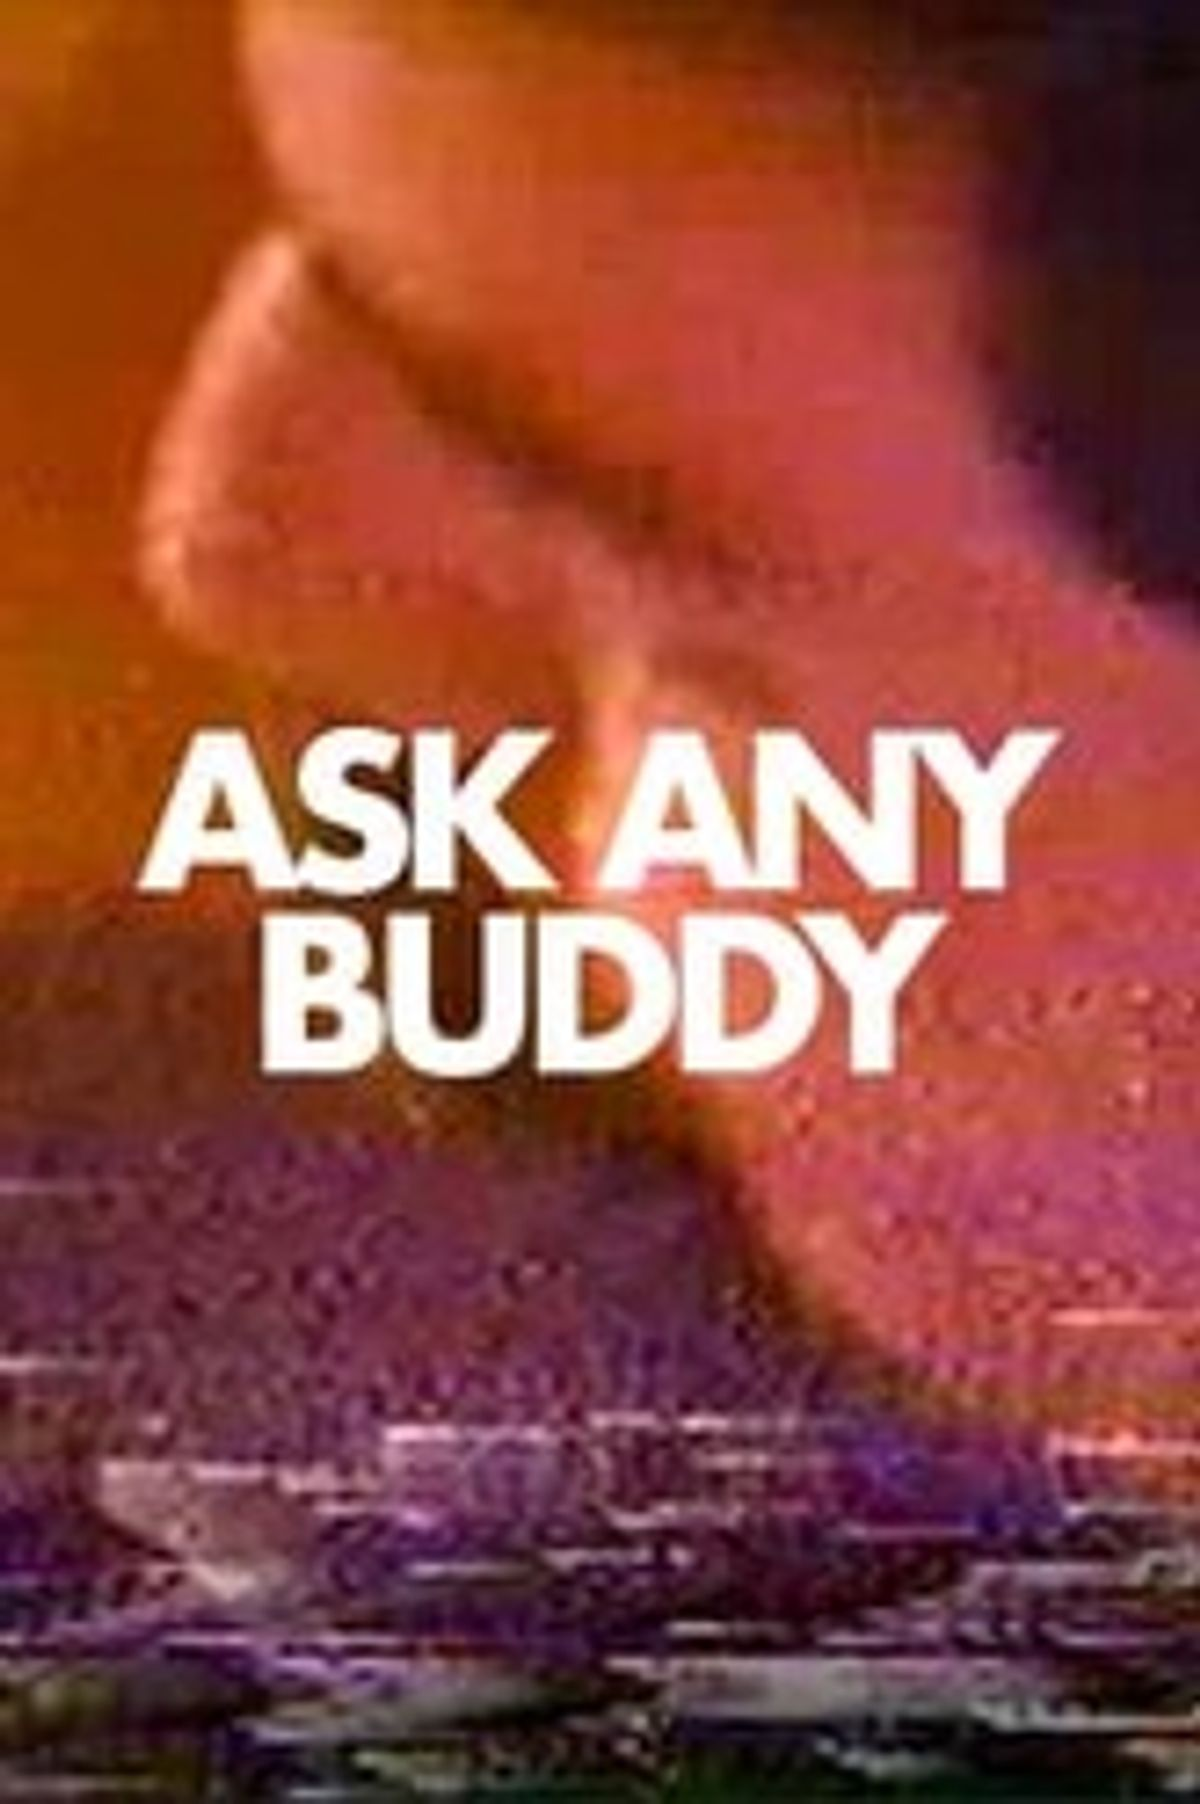 Ask Any Buddy Film Poster